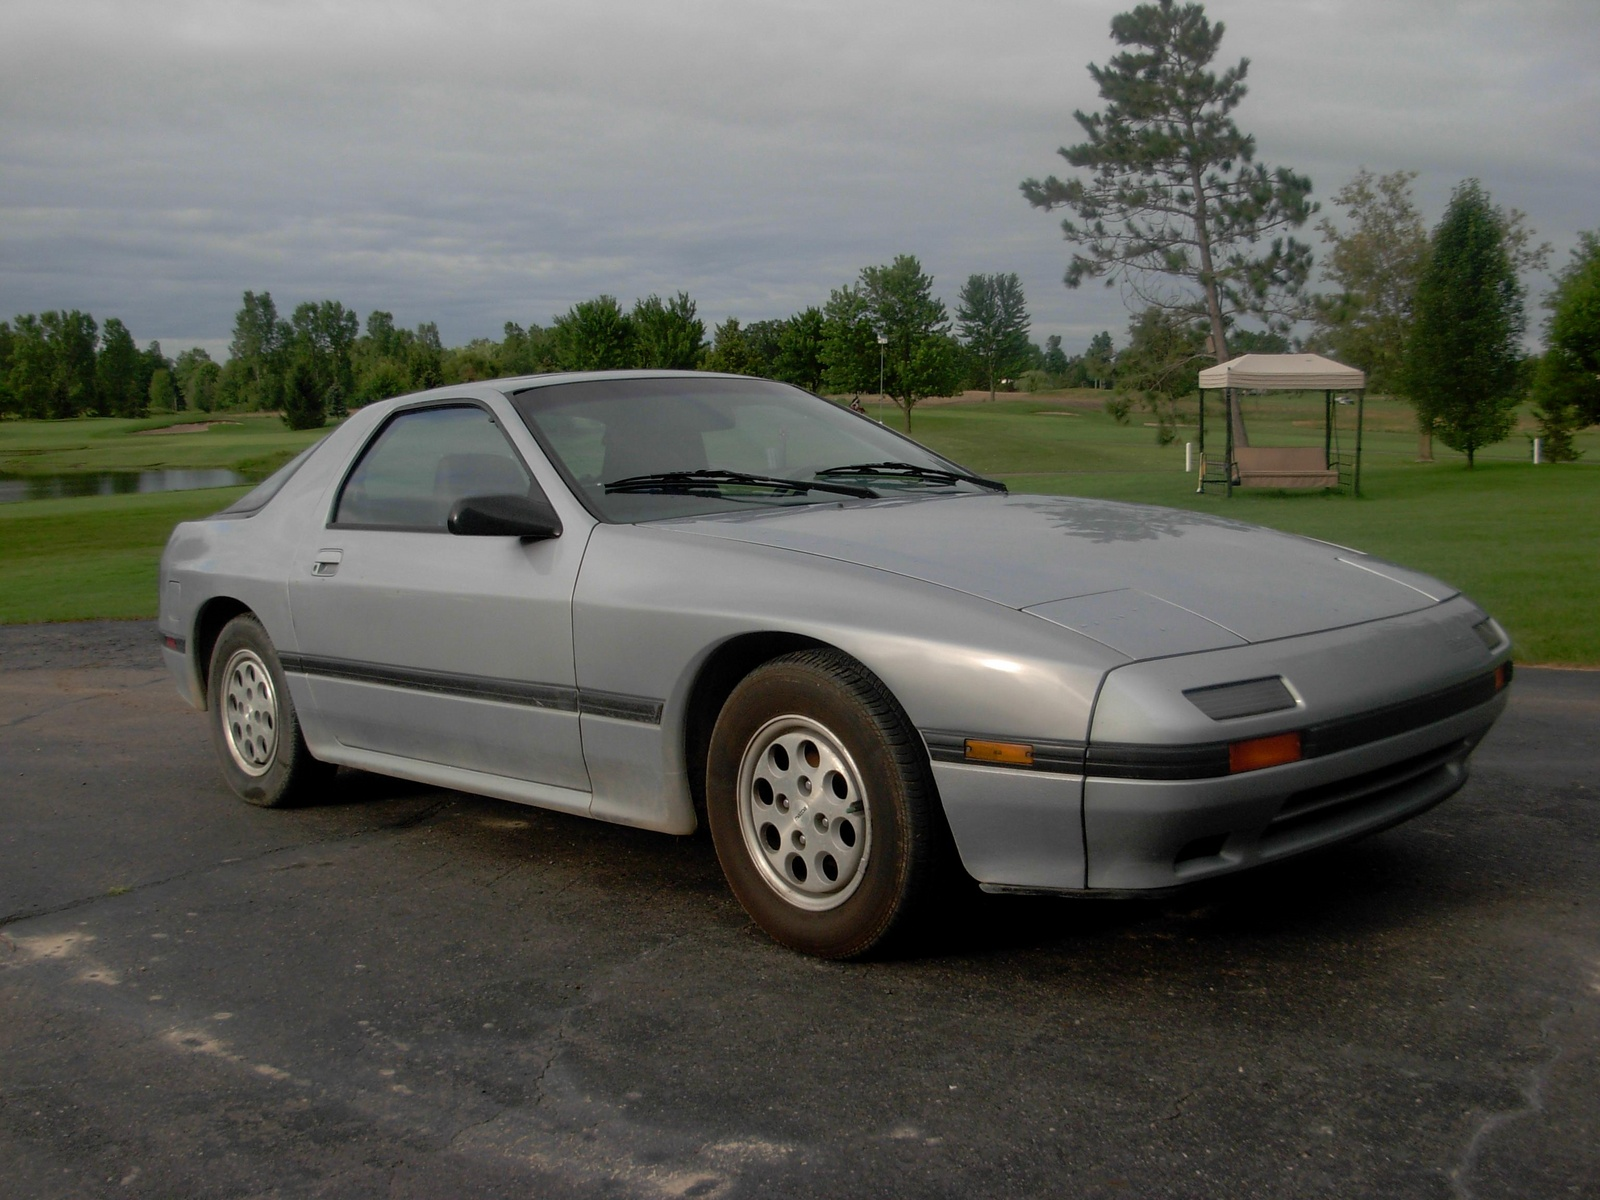 1987 mazda rx 7 pictures cargurus. Black Bedroom Furniture Sets. Home Design Ideas